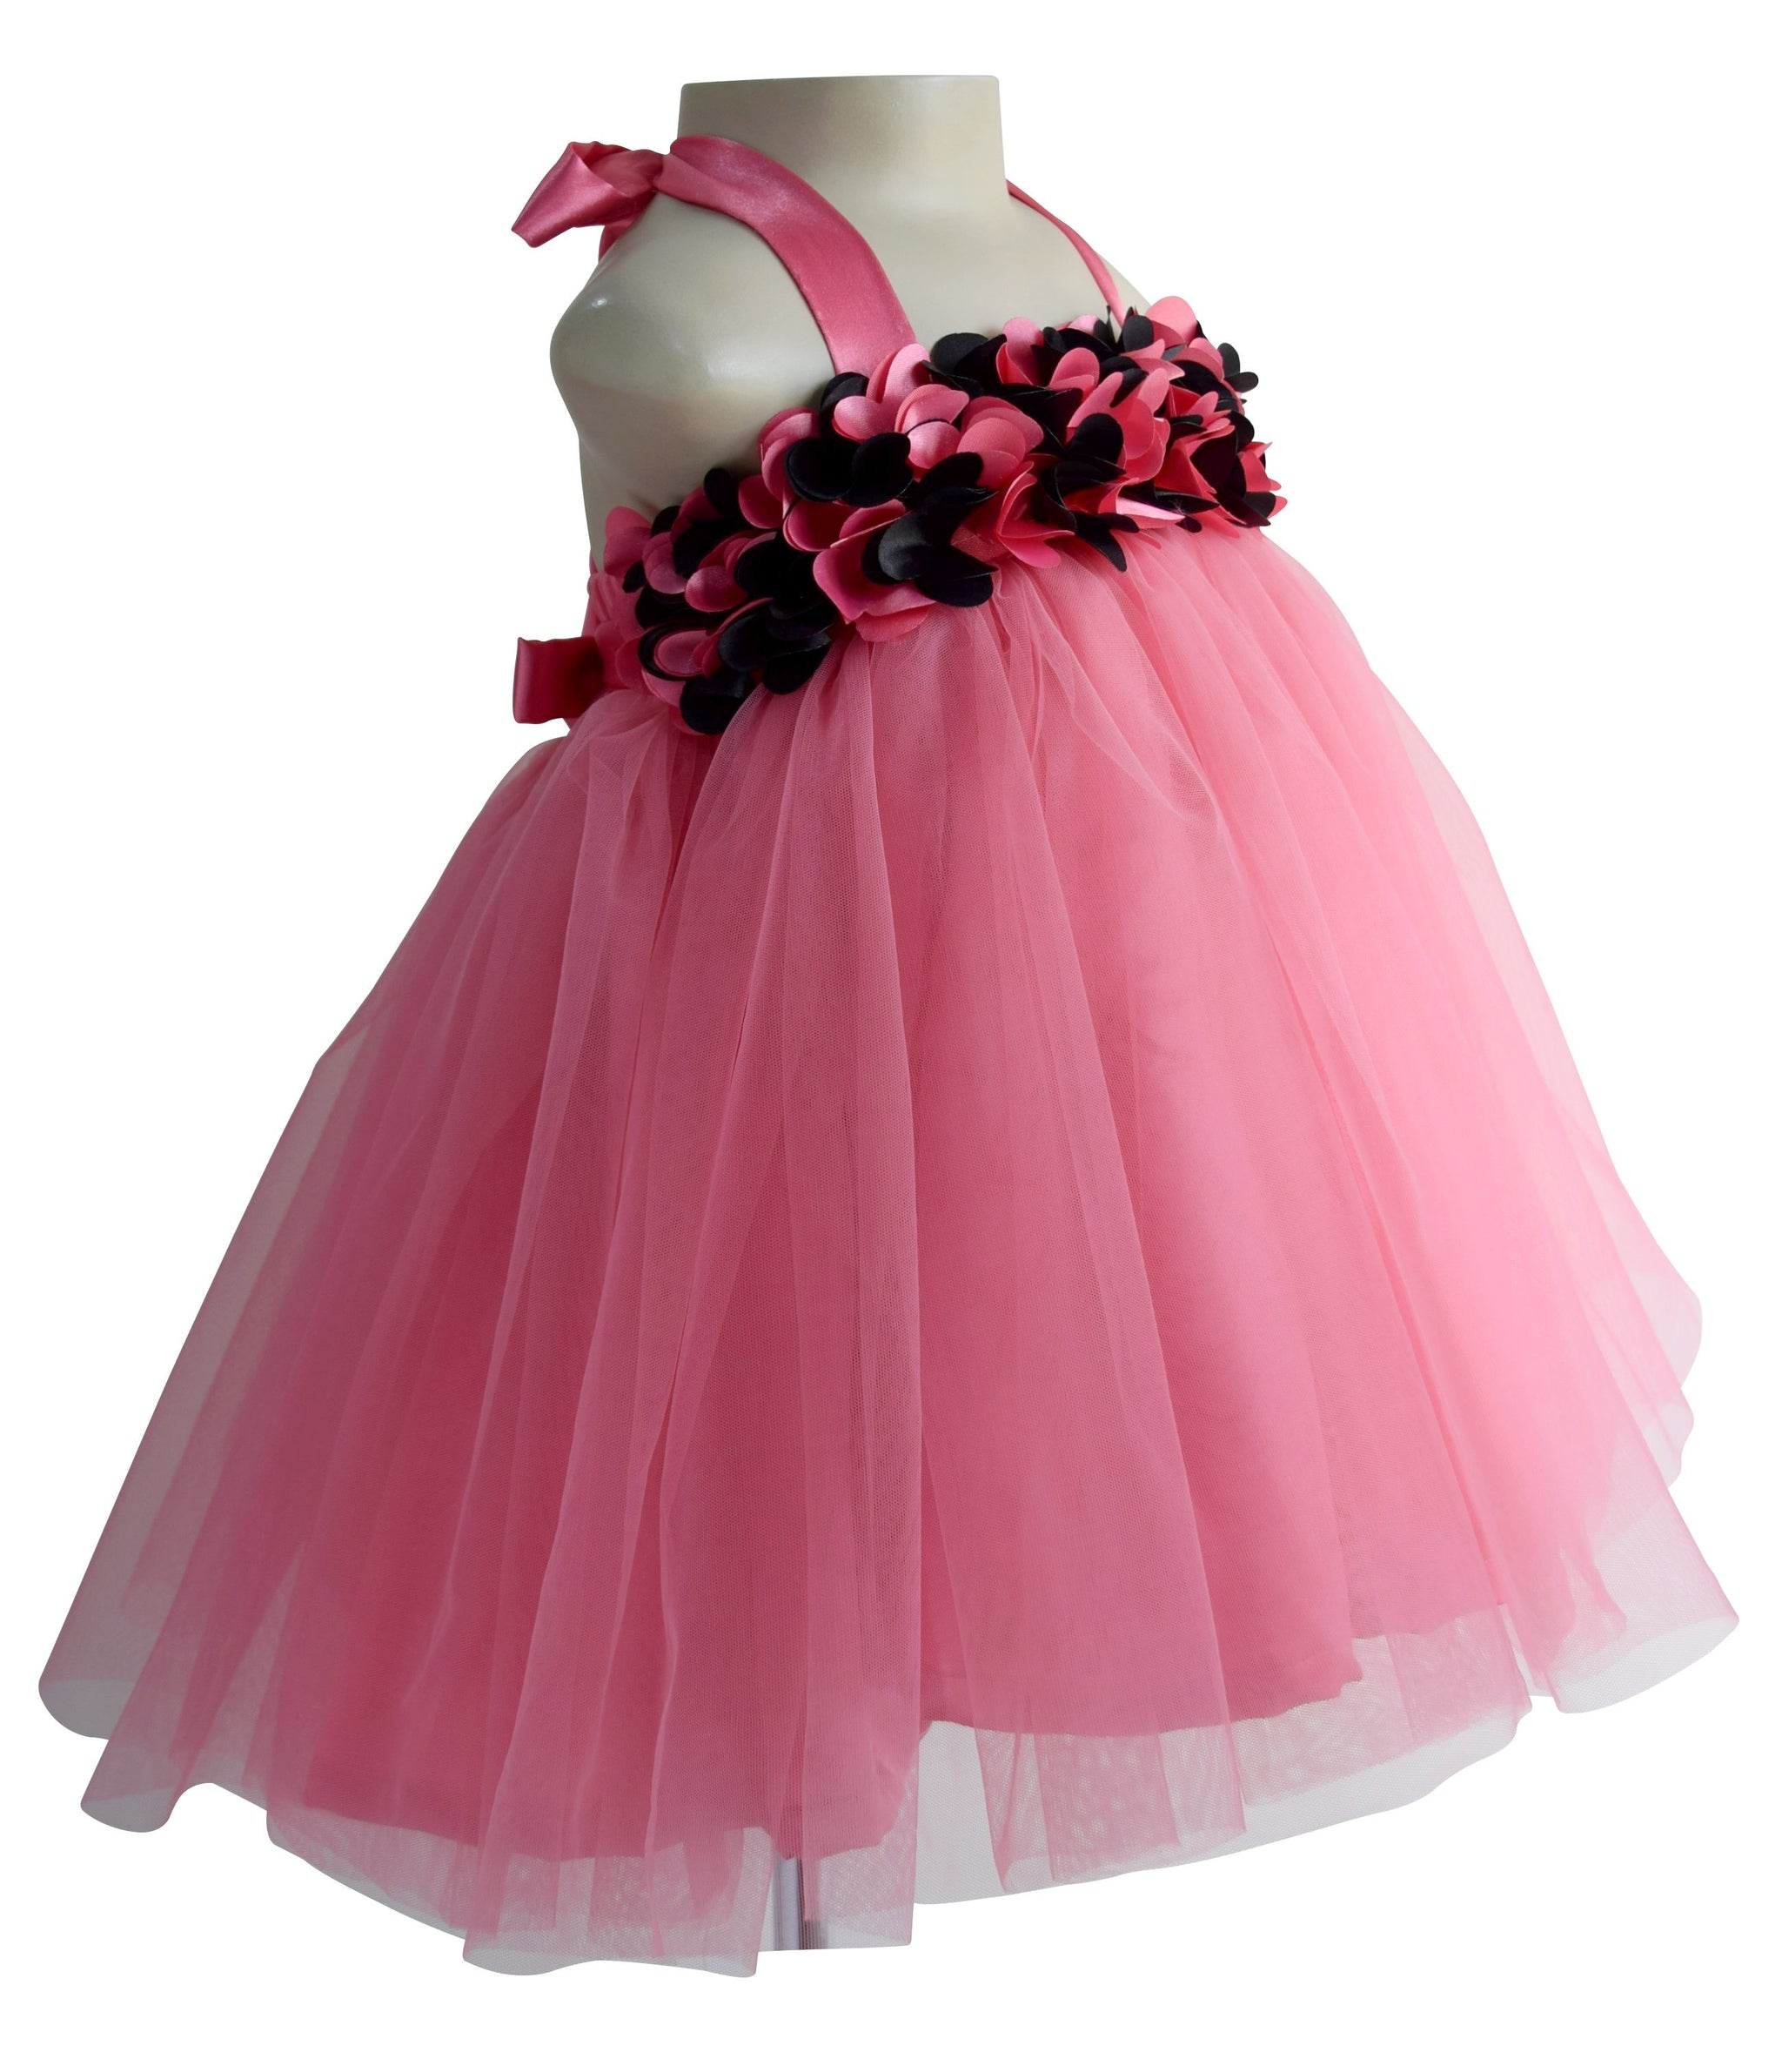 Strong-Willed Stunning Dress From Next Age 12-18 Months Baby & Toddler Clothing